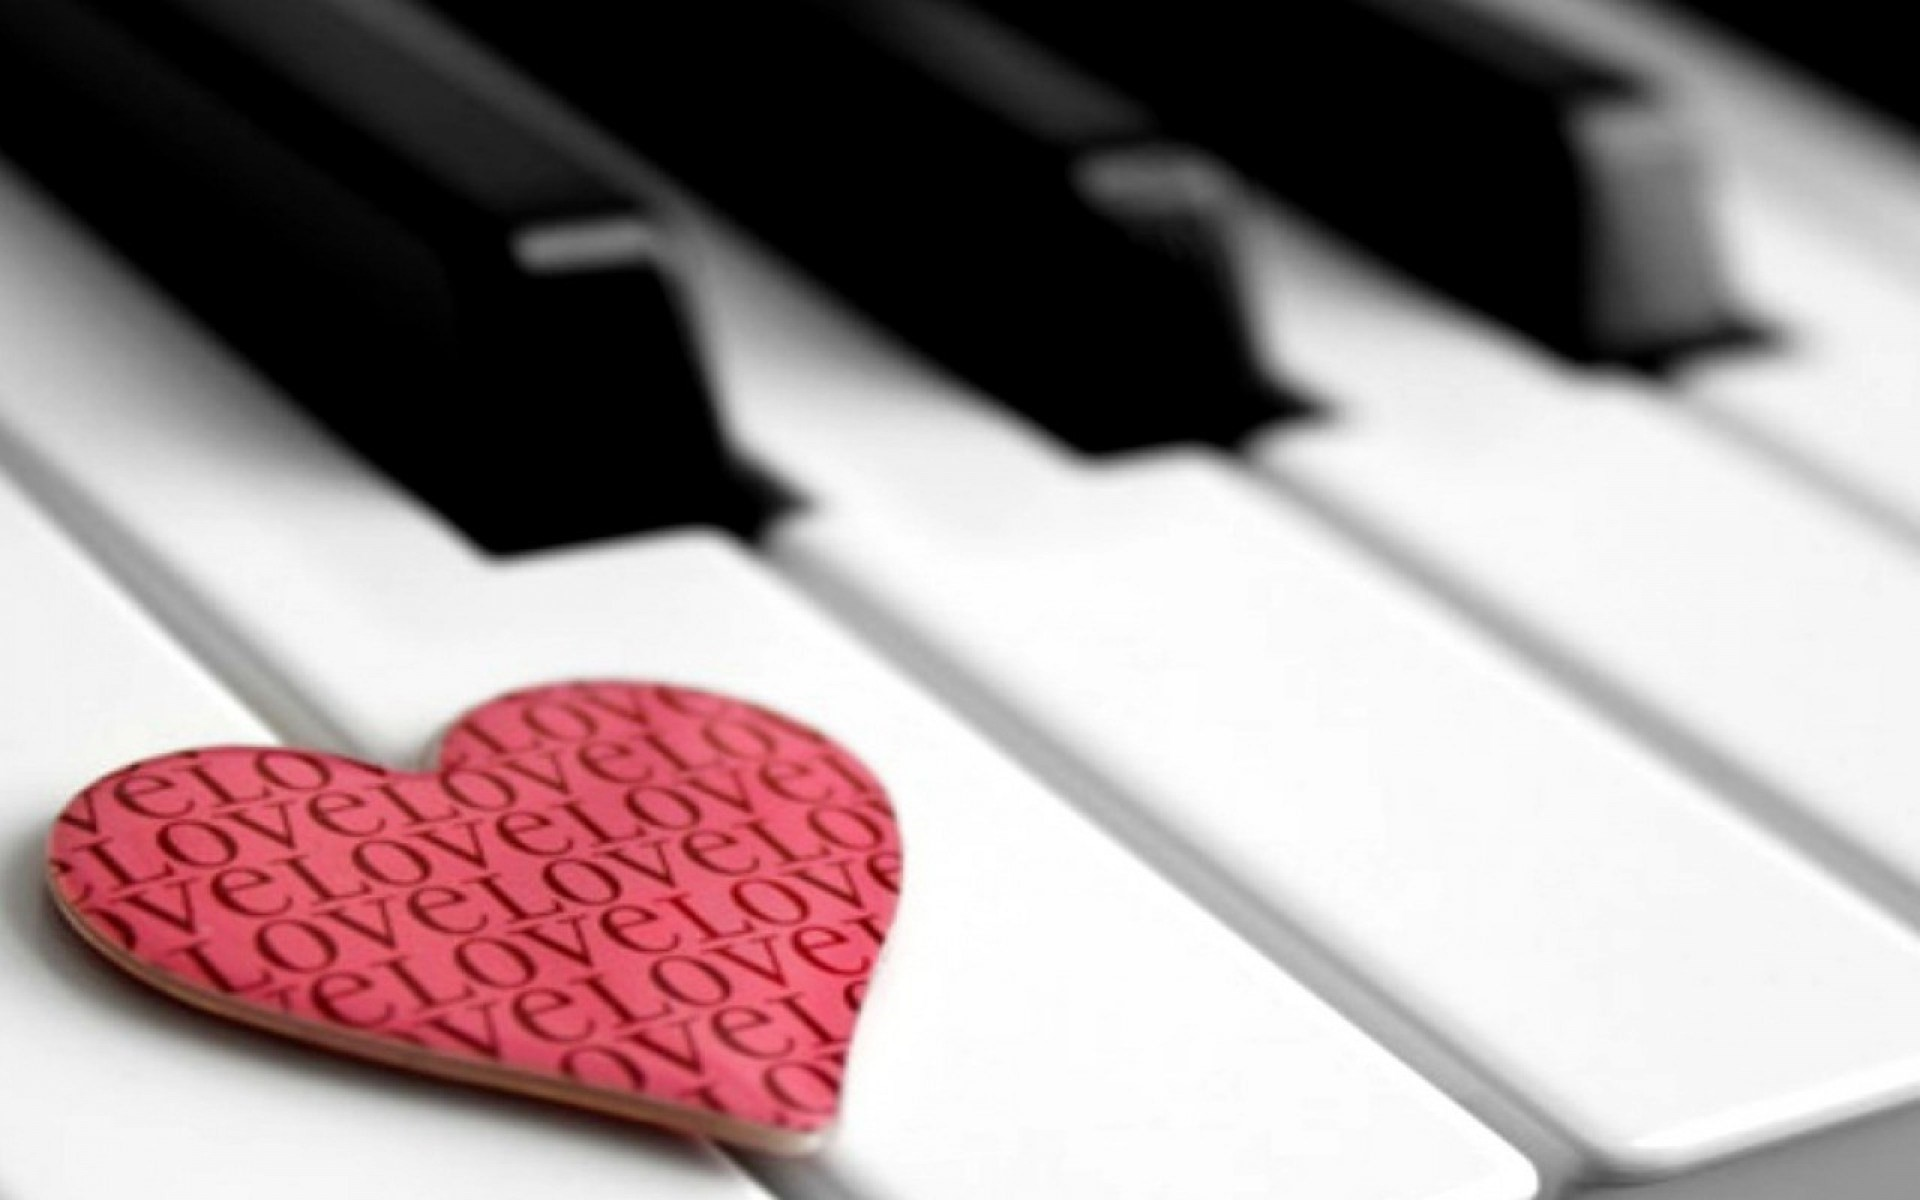 Res: 1920x1200, Music, Piano, Heart, Pink, Love - HD wallpapers